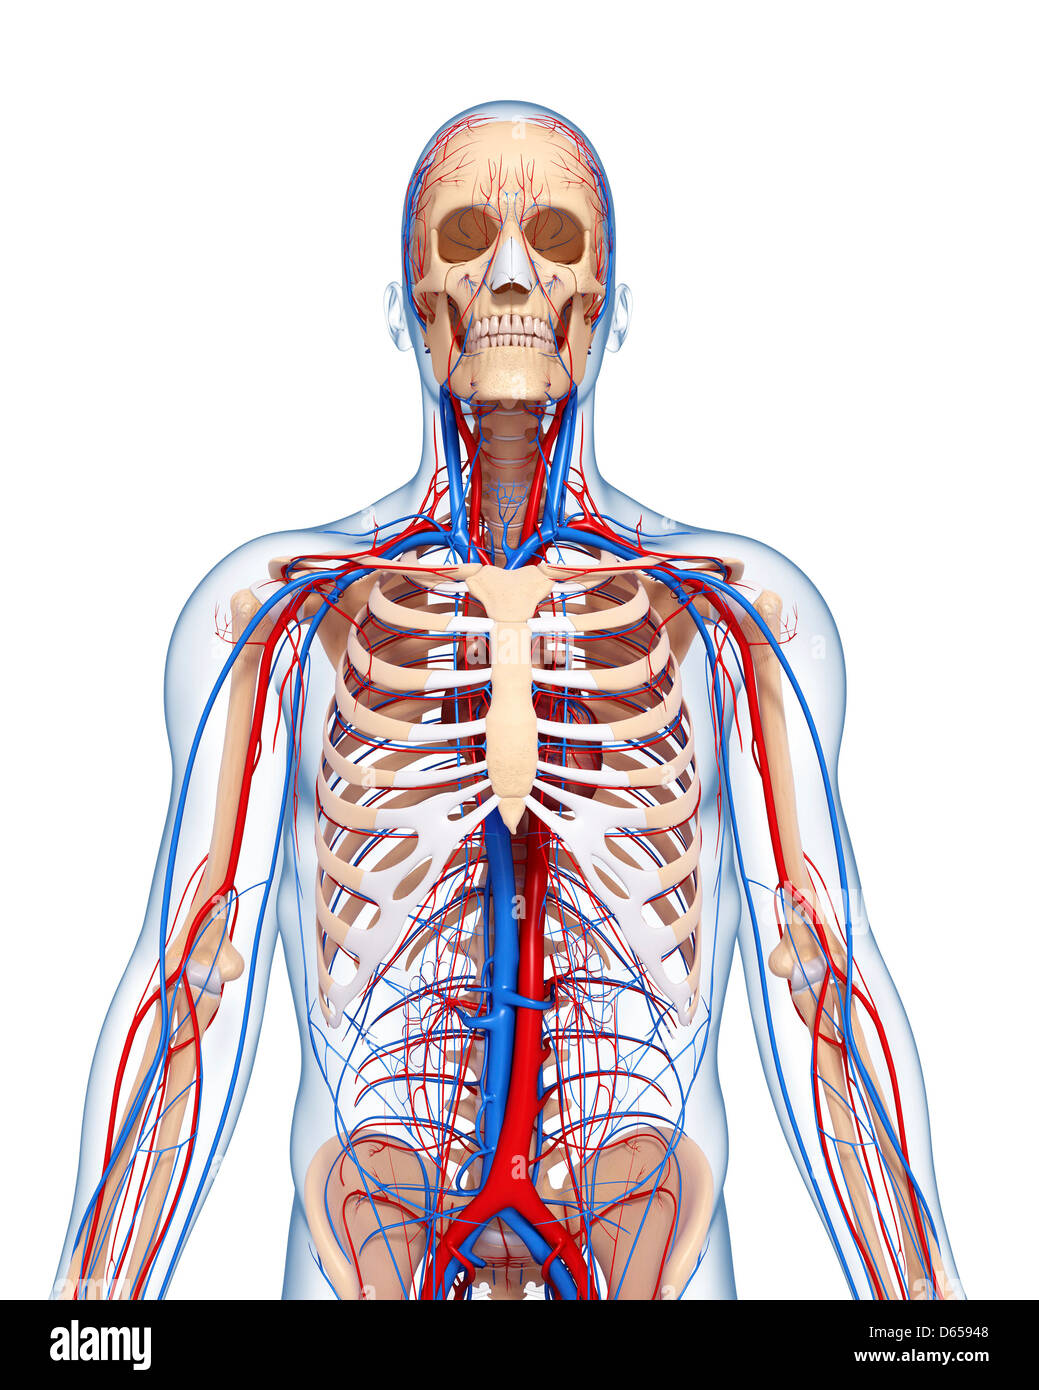 Upper body anatomy, artwork Stock Photo: 55435976 - Alamy